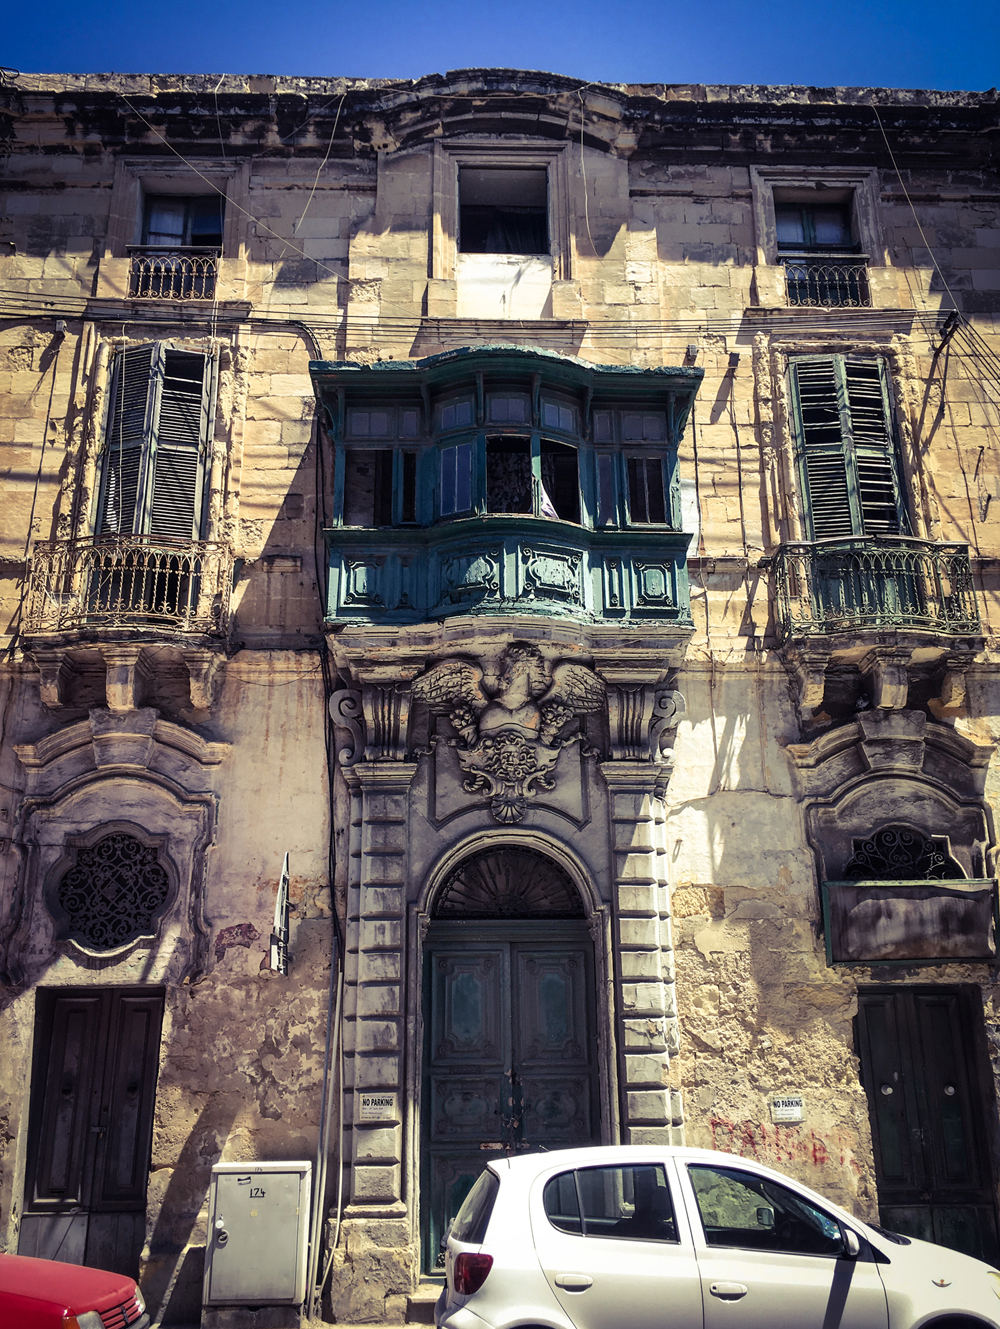 Derelict facade of an old house of character, Triq San Pawl, Bormla, Malta © Helen Jones-Florio